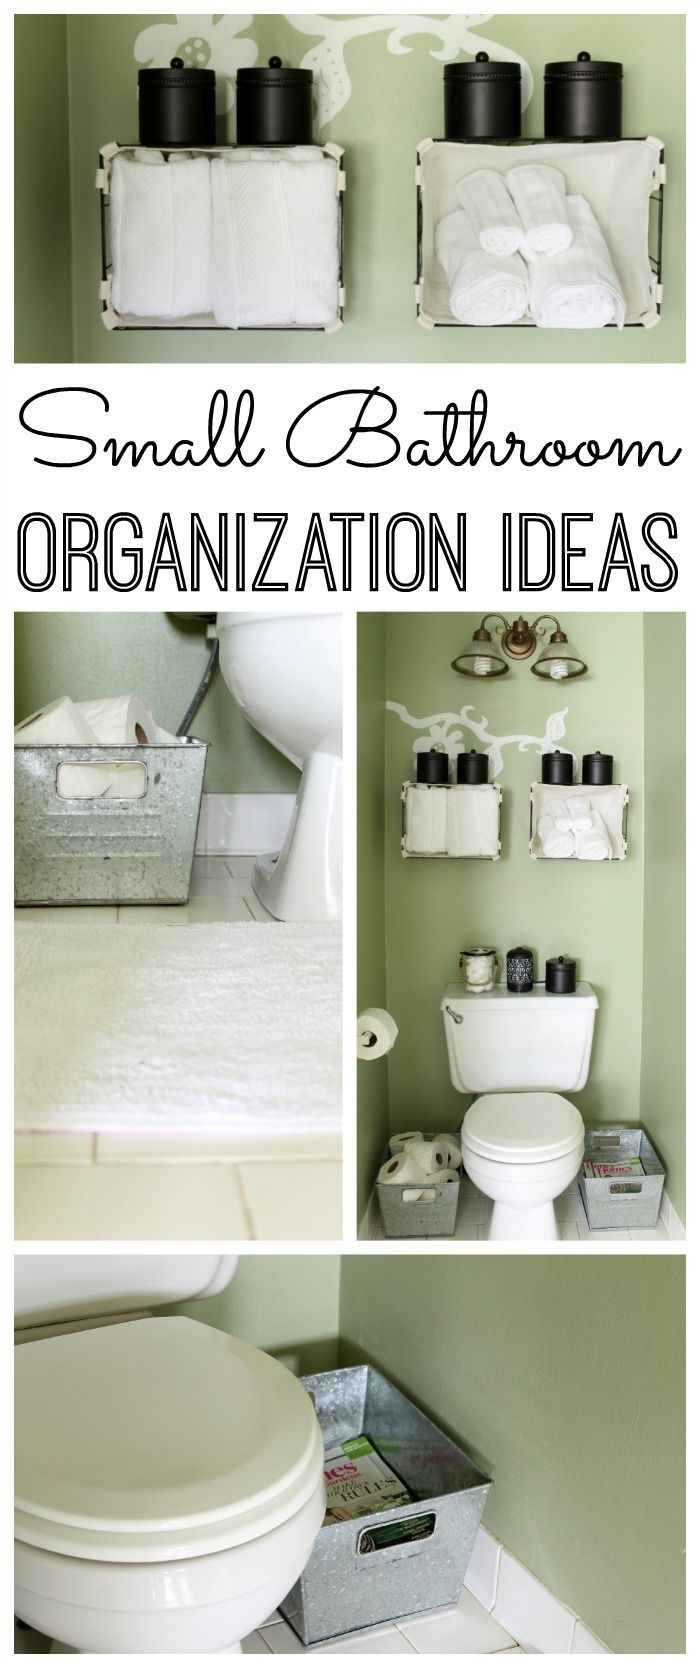 Bathroom organizers ideas - Small Bathroom Organization Ideas